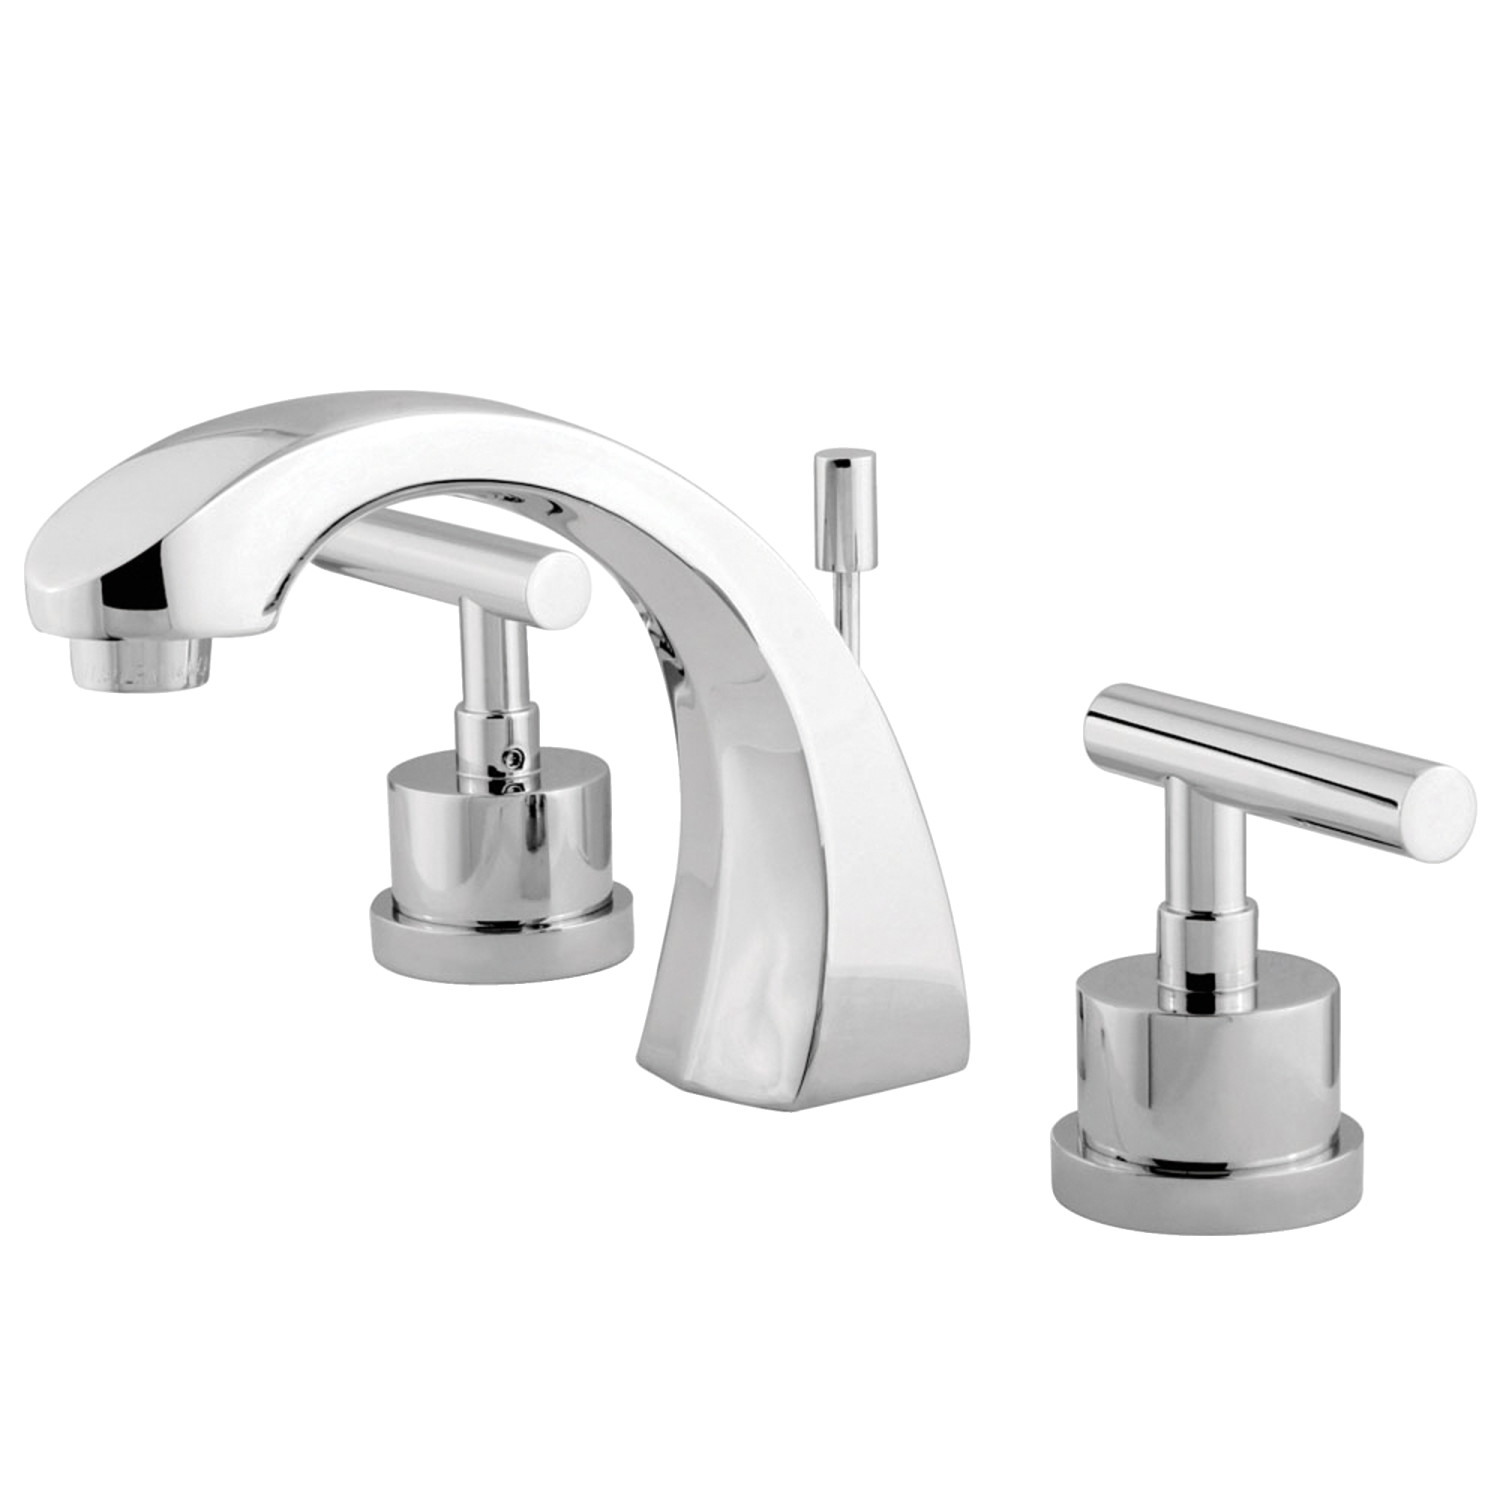 Modern Two-Handle 3-Hole Deck Mount Widespread Bathroom Faucet with Brass Pop-Up